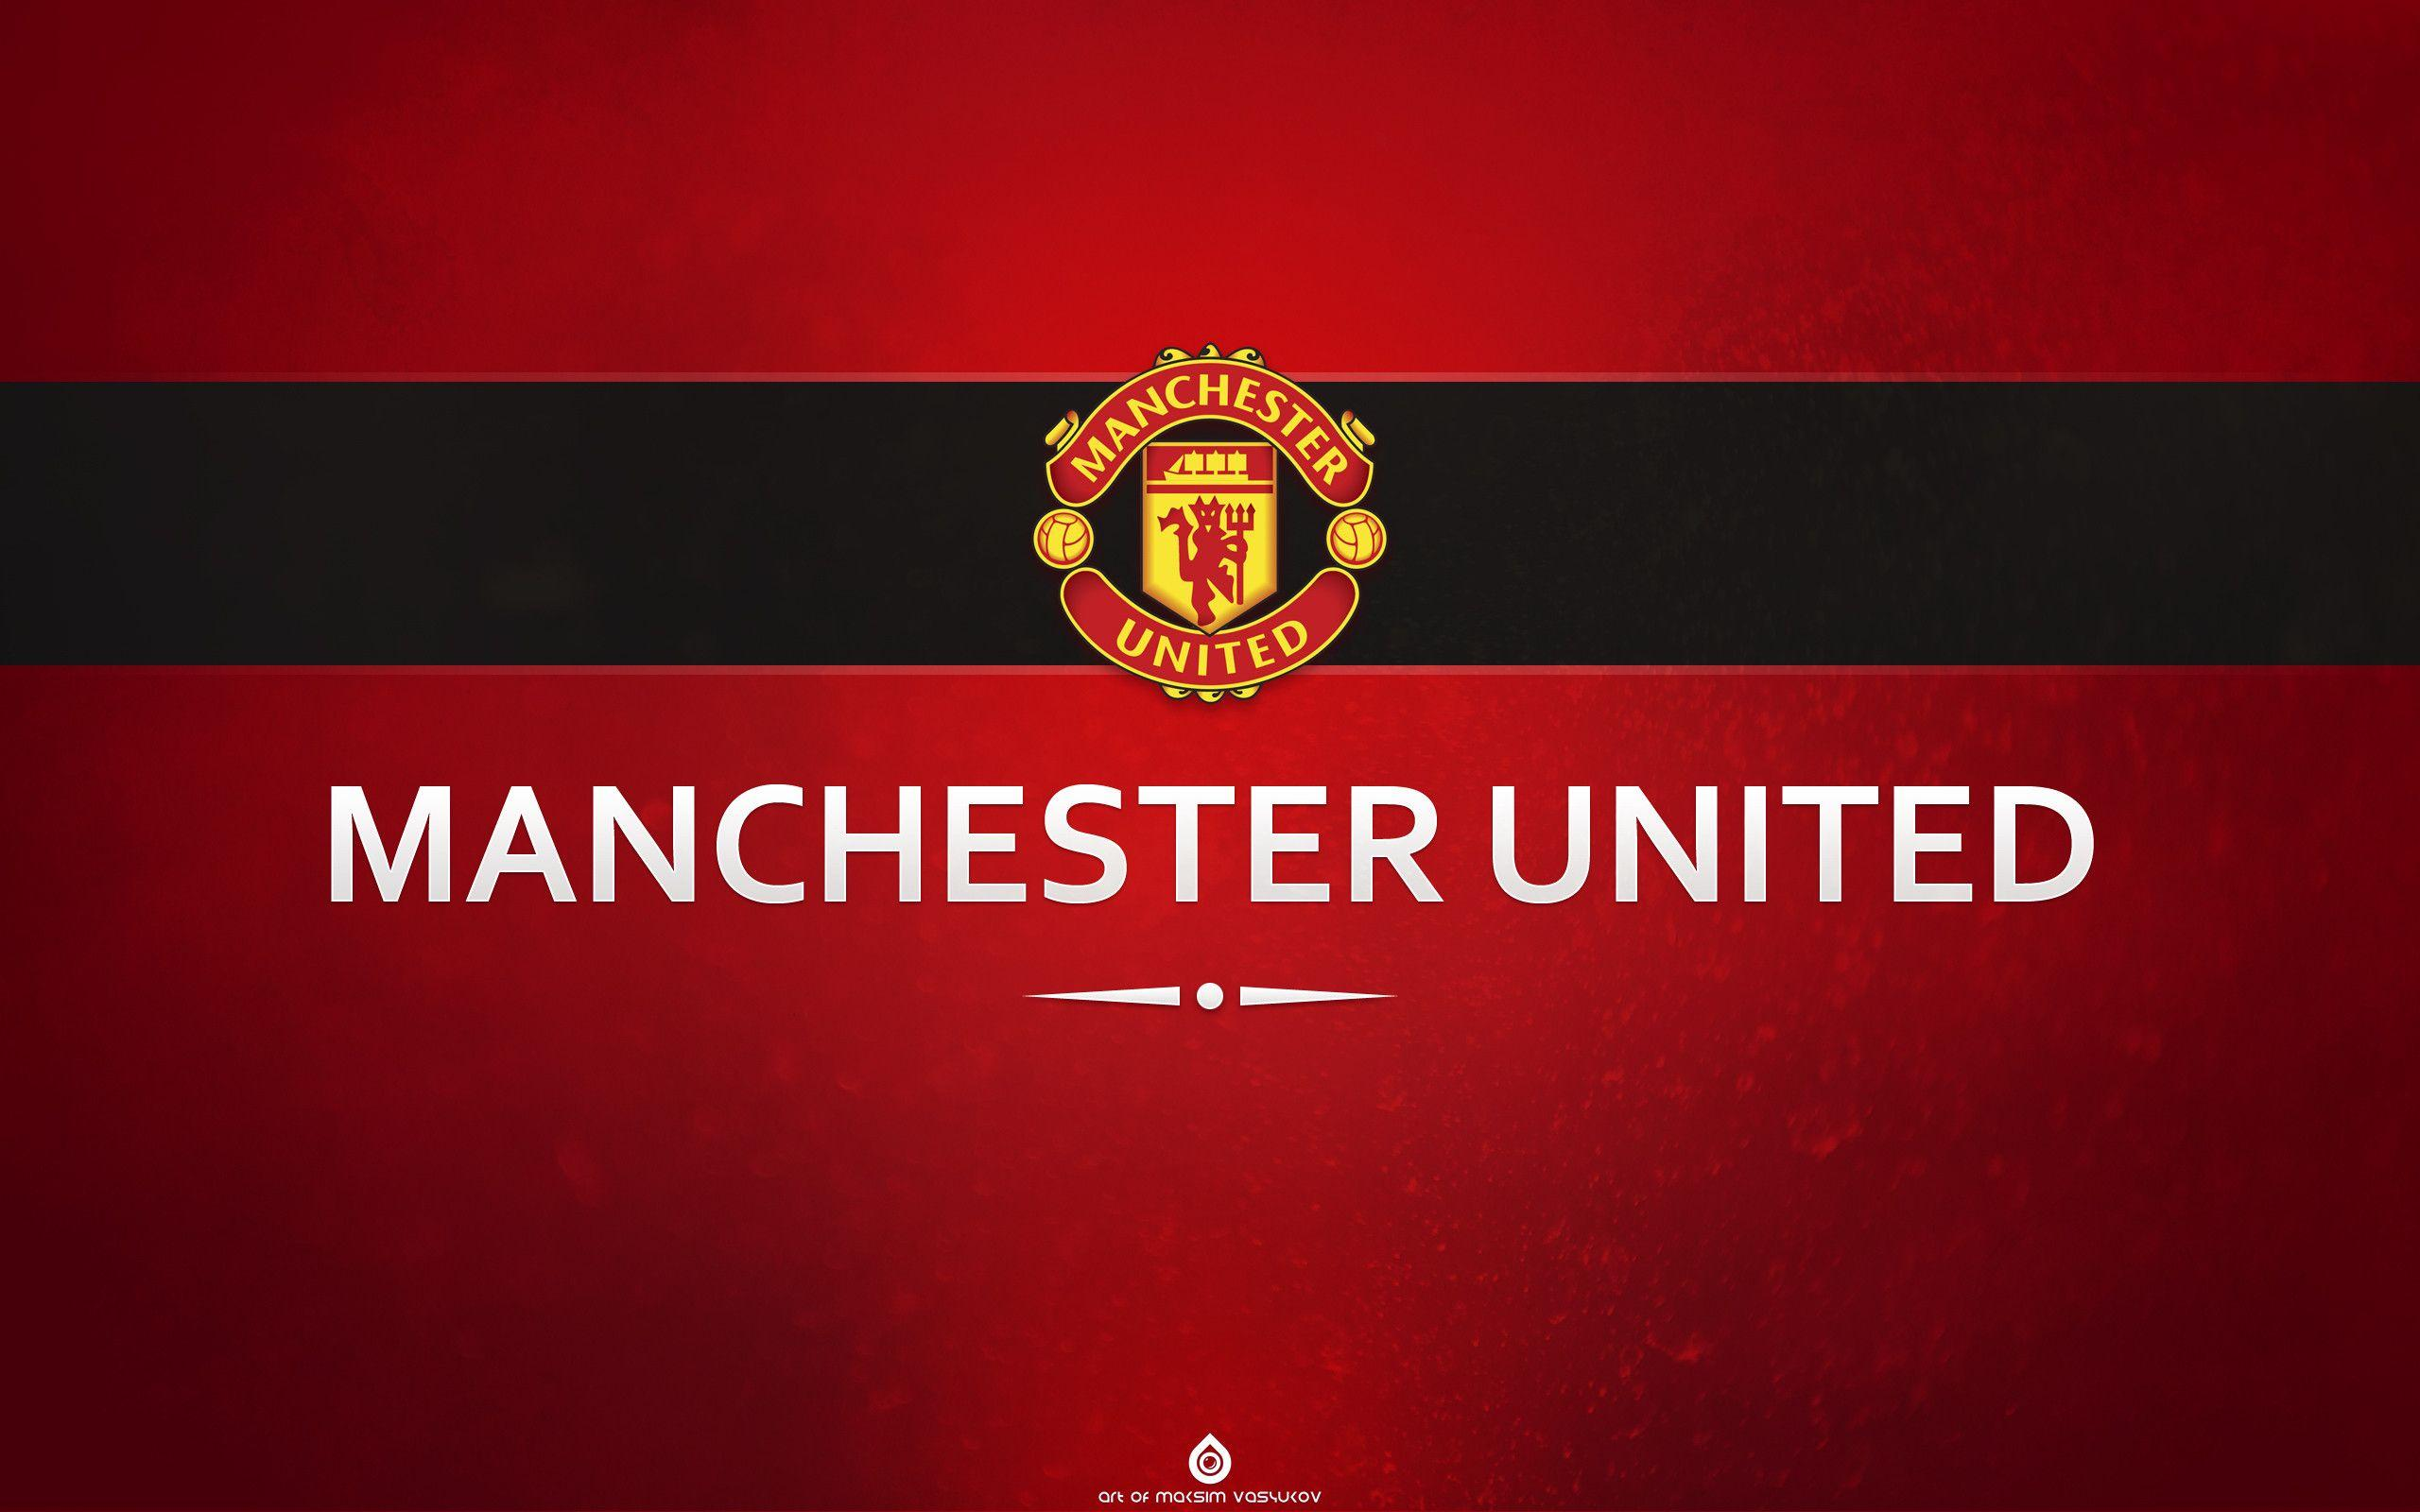 Manchester United HD Wallpaper | Manchester United Images | New ...